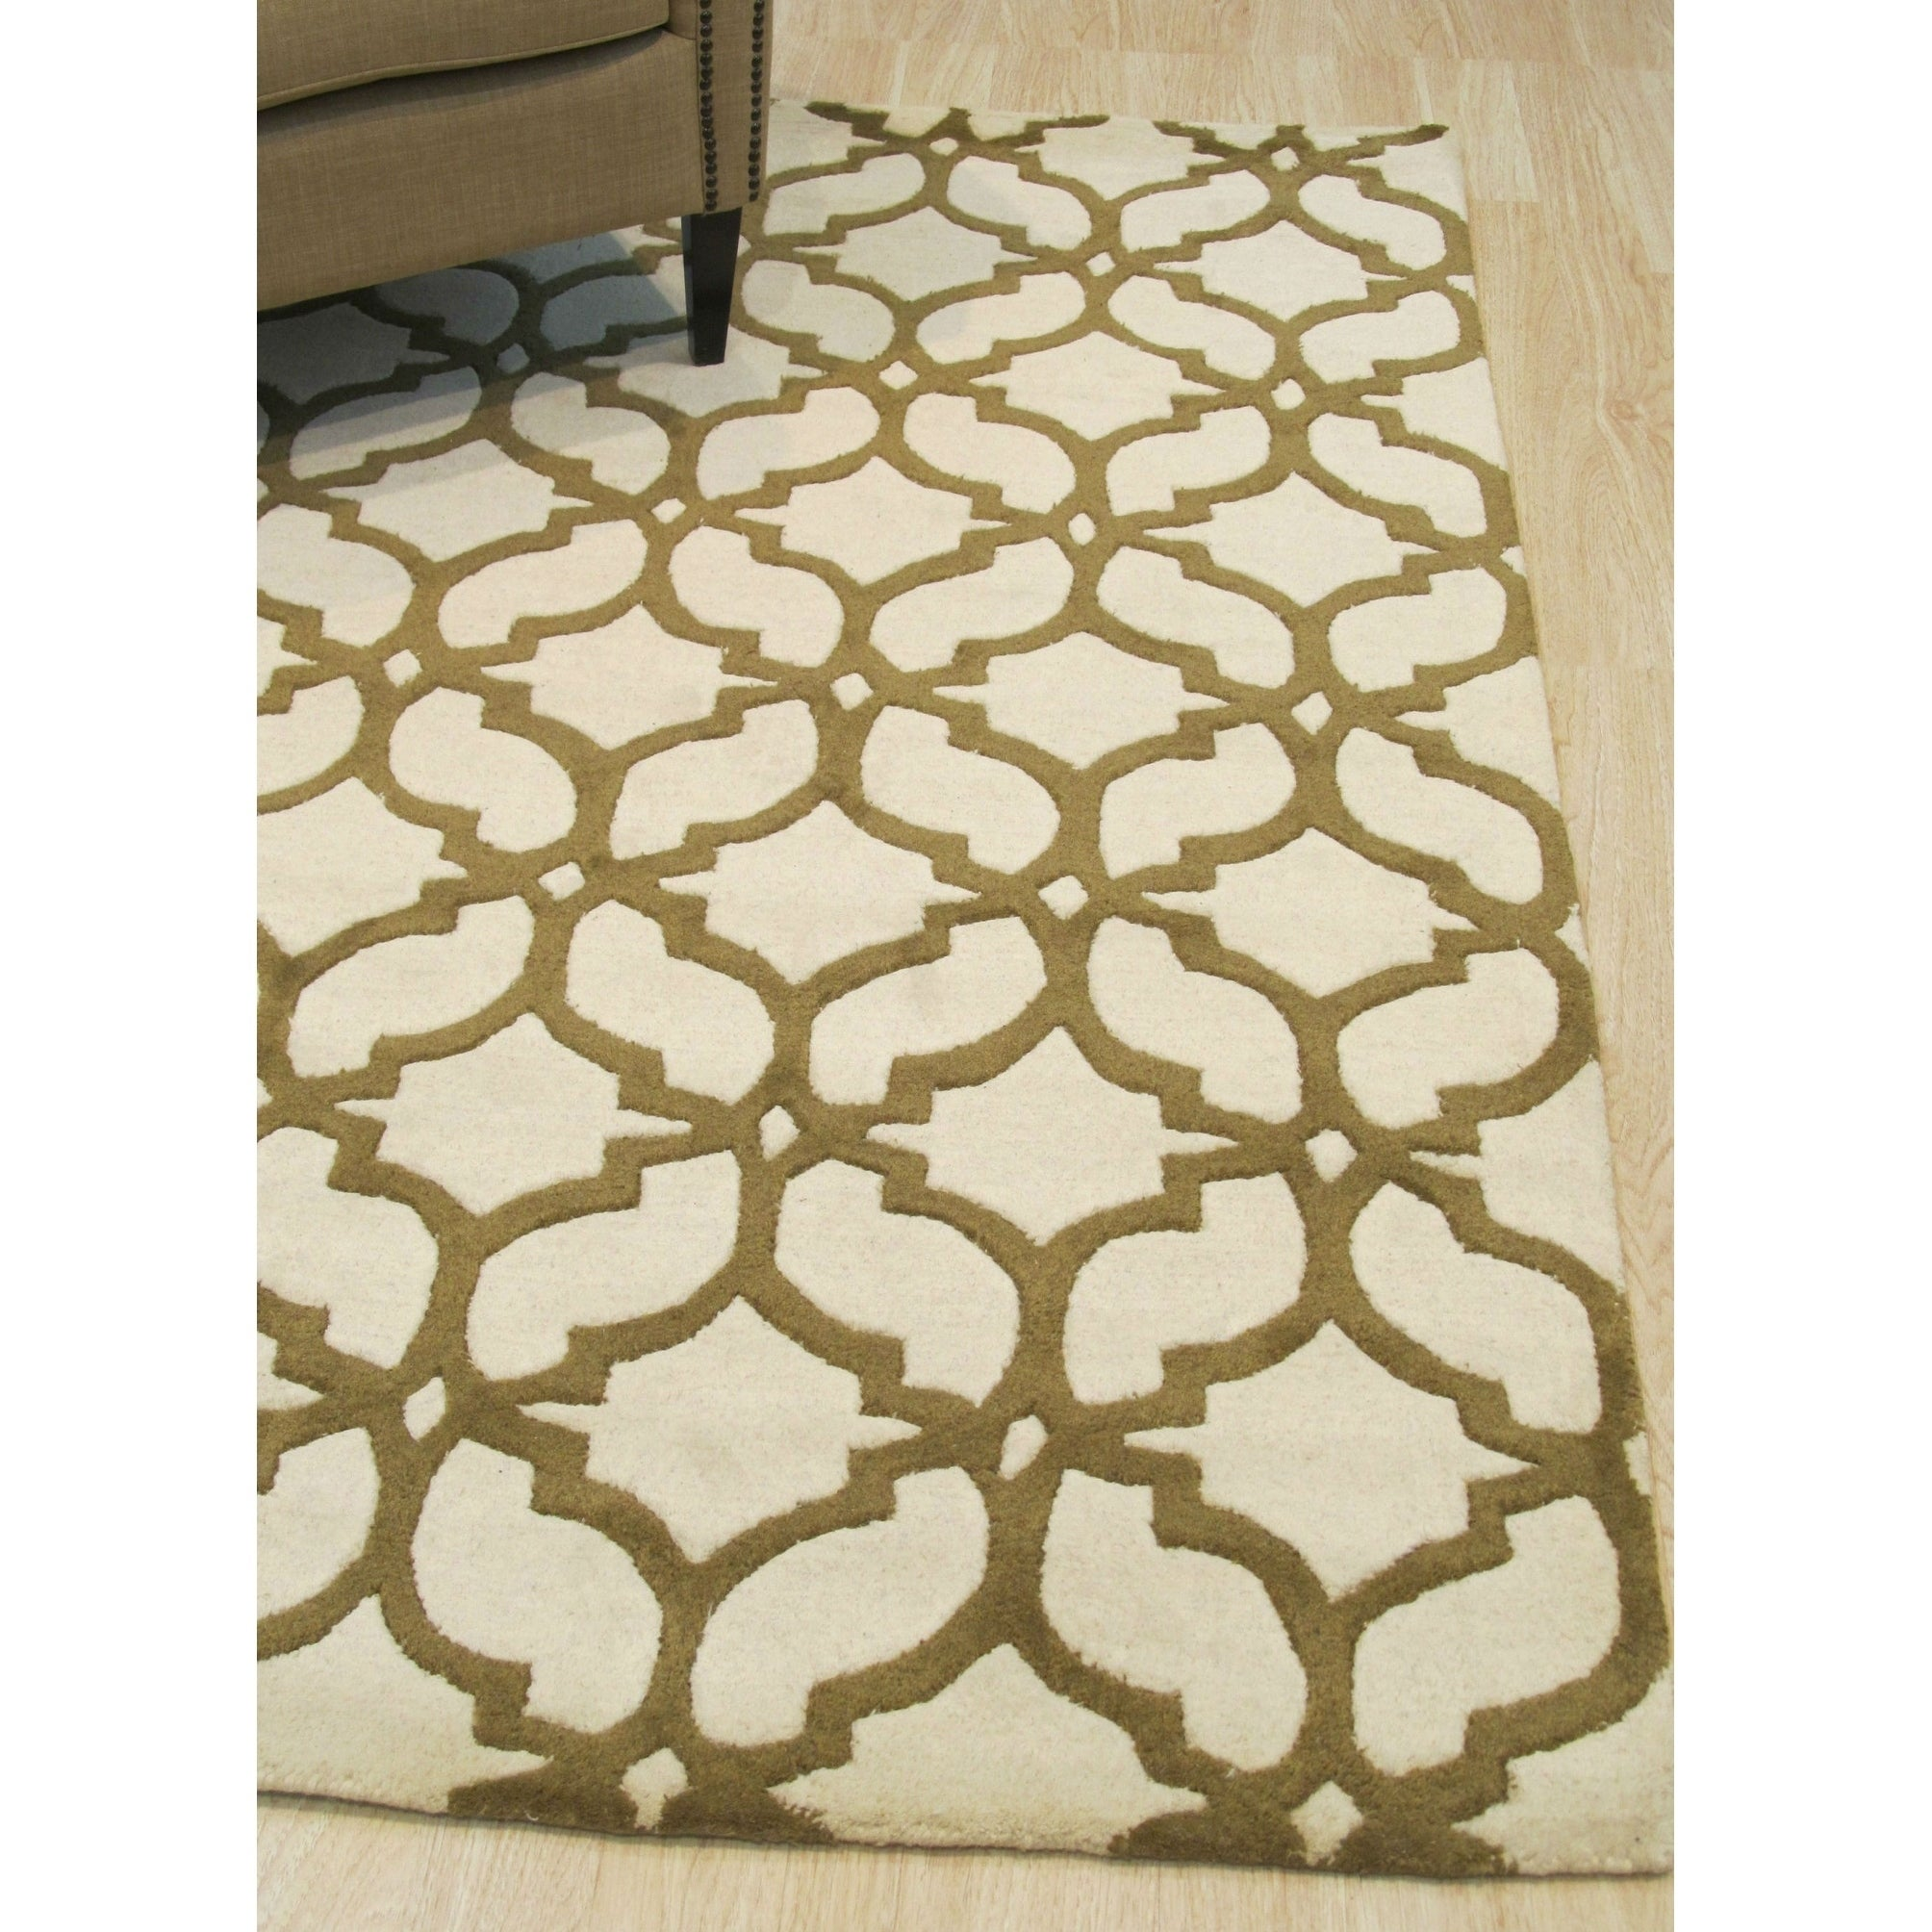 Hand-tufted Wool Ivory/Brown Traditional Trellis Moroccan